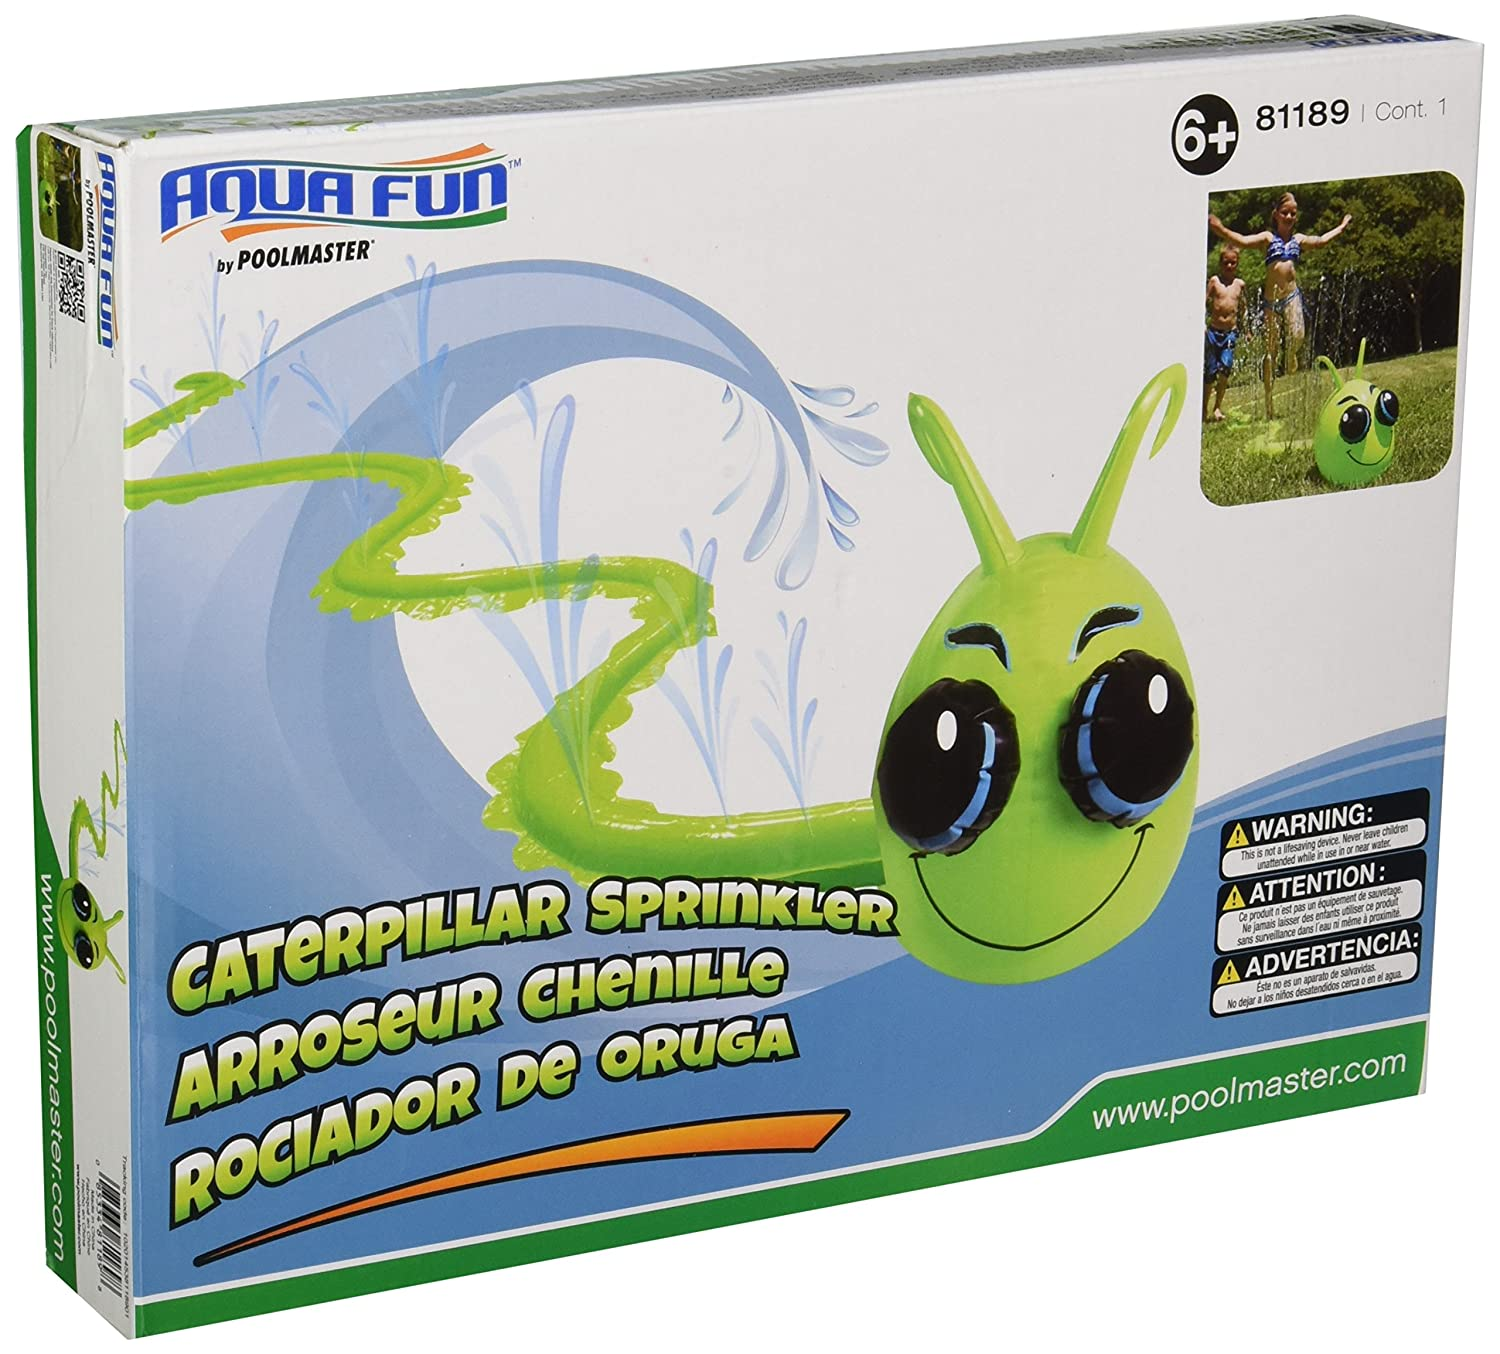 Poolmaster Caterpillar Sprinkler Toy